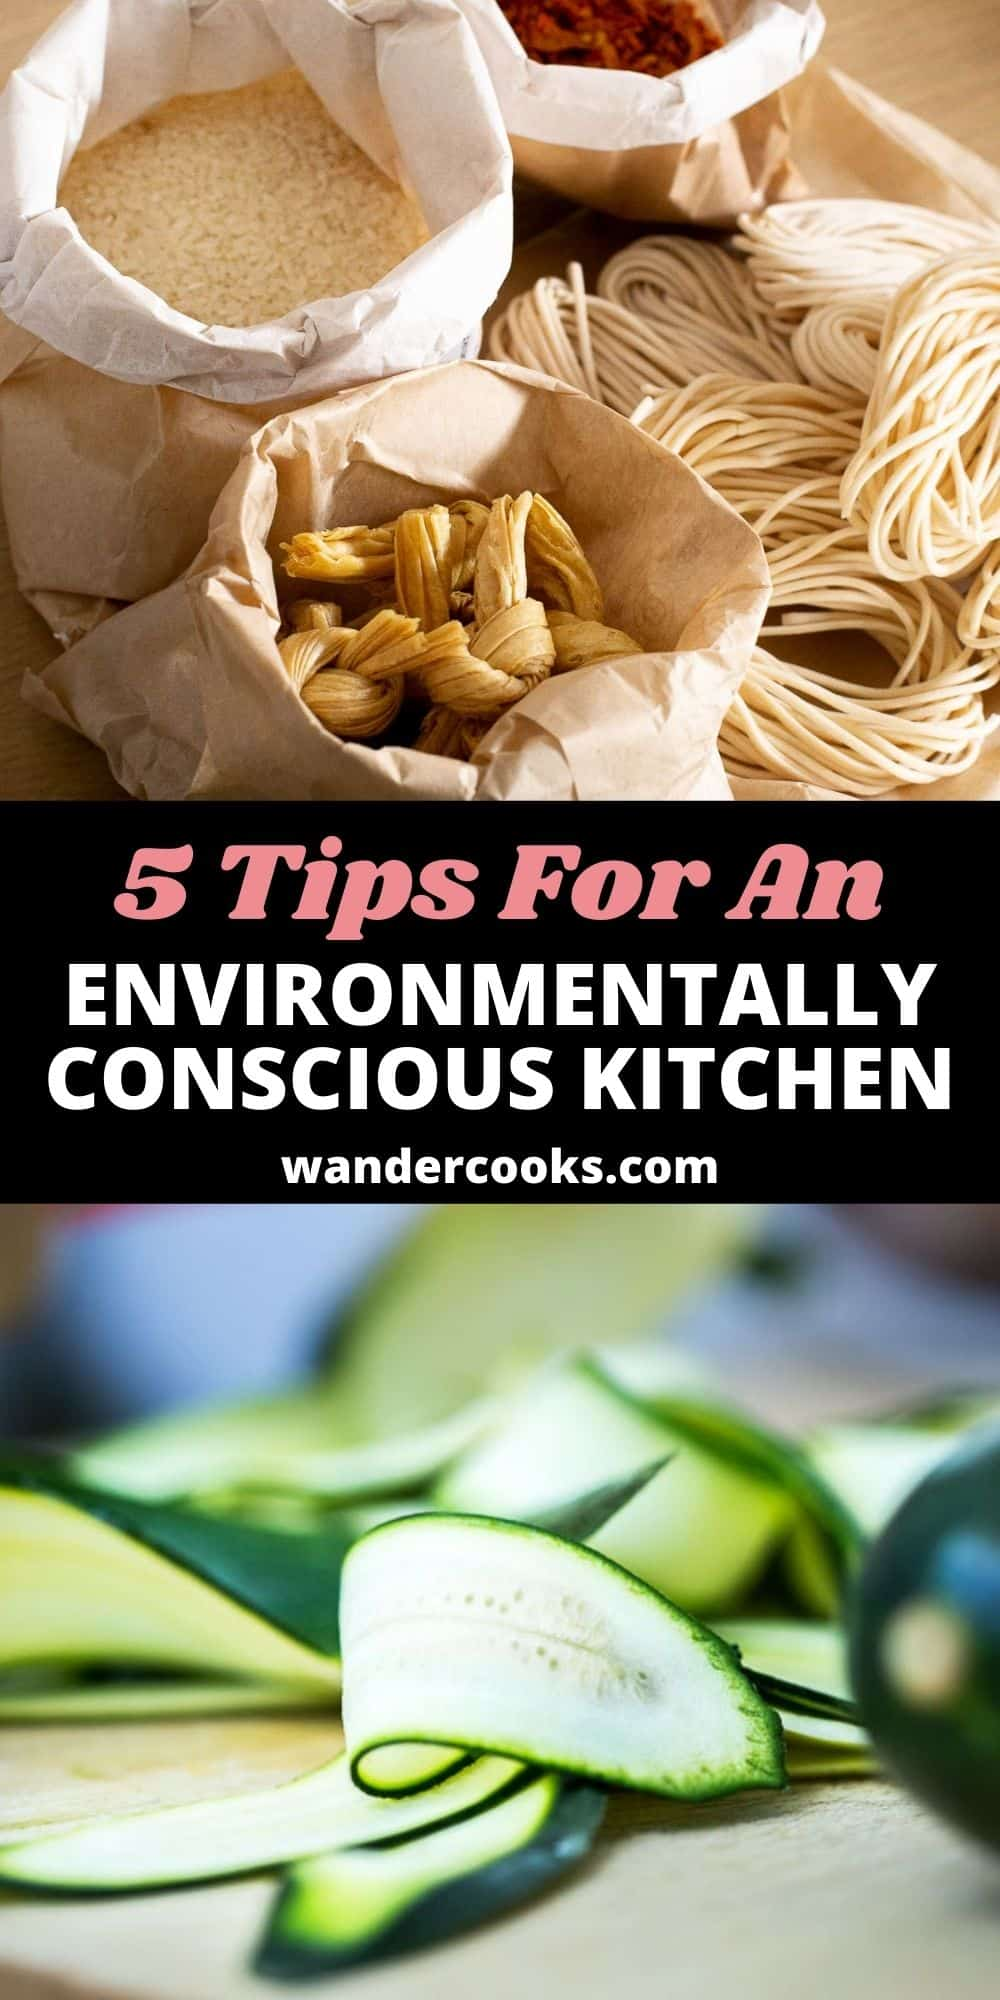 5 Tips For an Environmentally Conscious Kitchen - Cooking Sustainably with Zero Waste Food in Mind